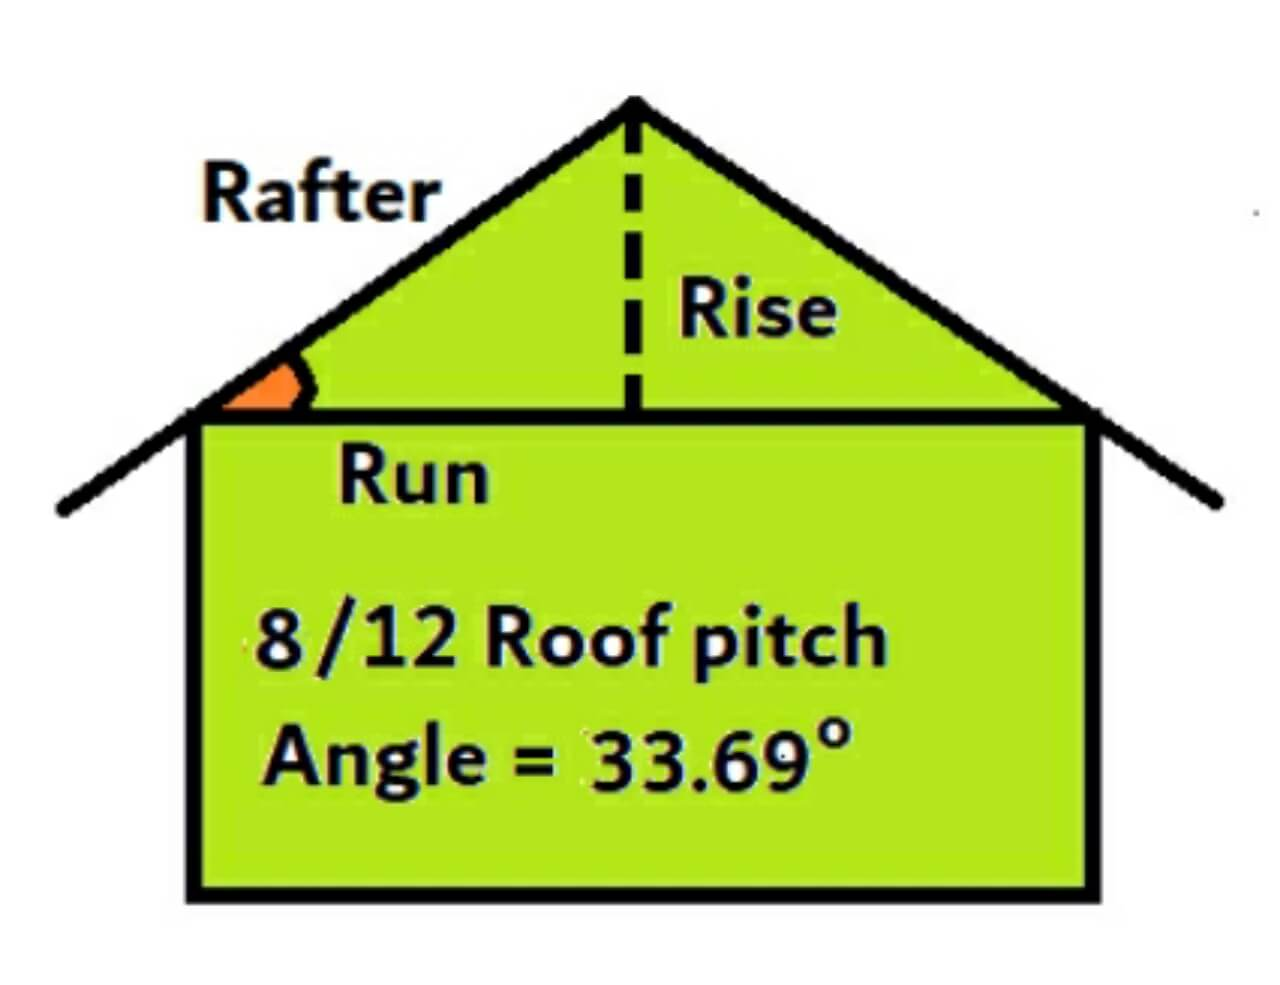 8 on 12 roof pitch